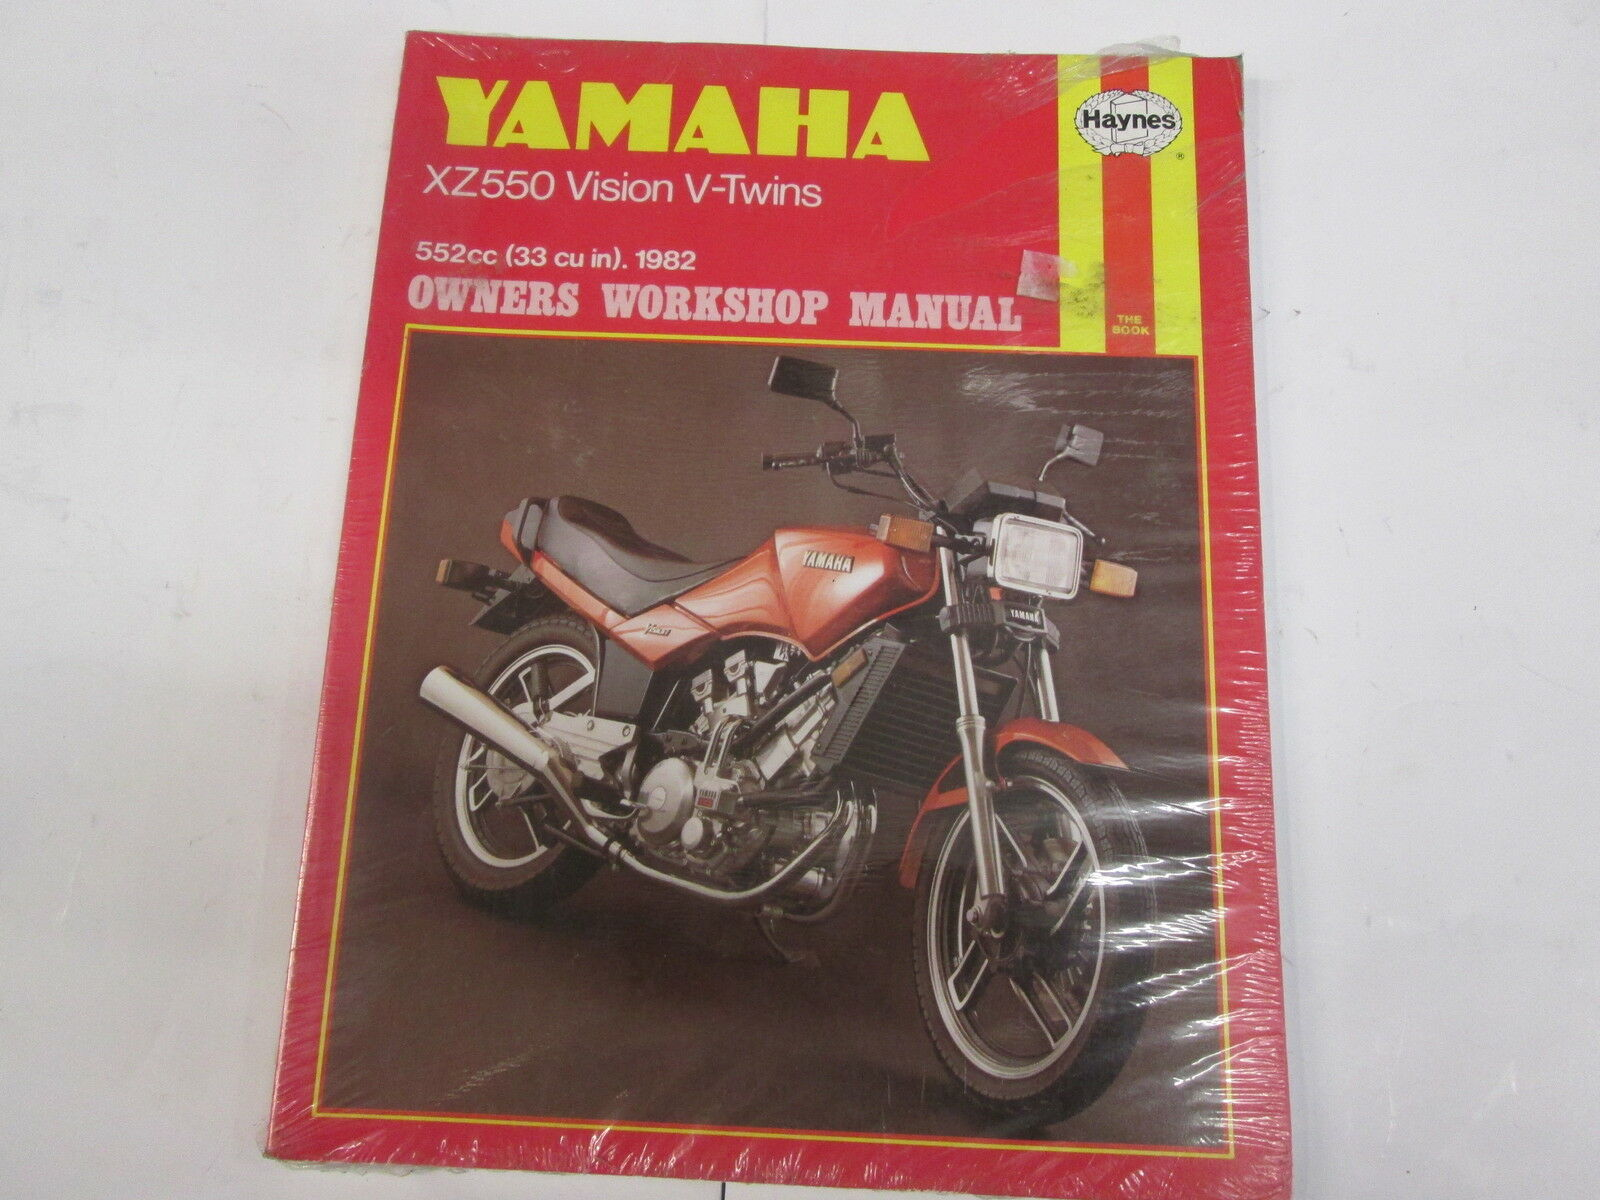 Yamaha Xz550 Vision V-Twins Haynes Workshop Manual 1 of 1Only 1 available  ...